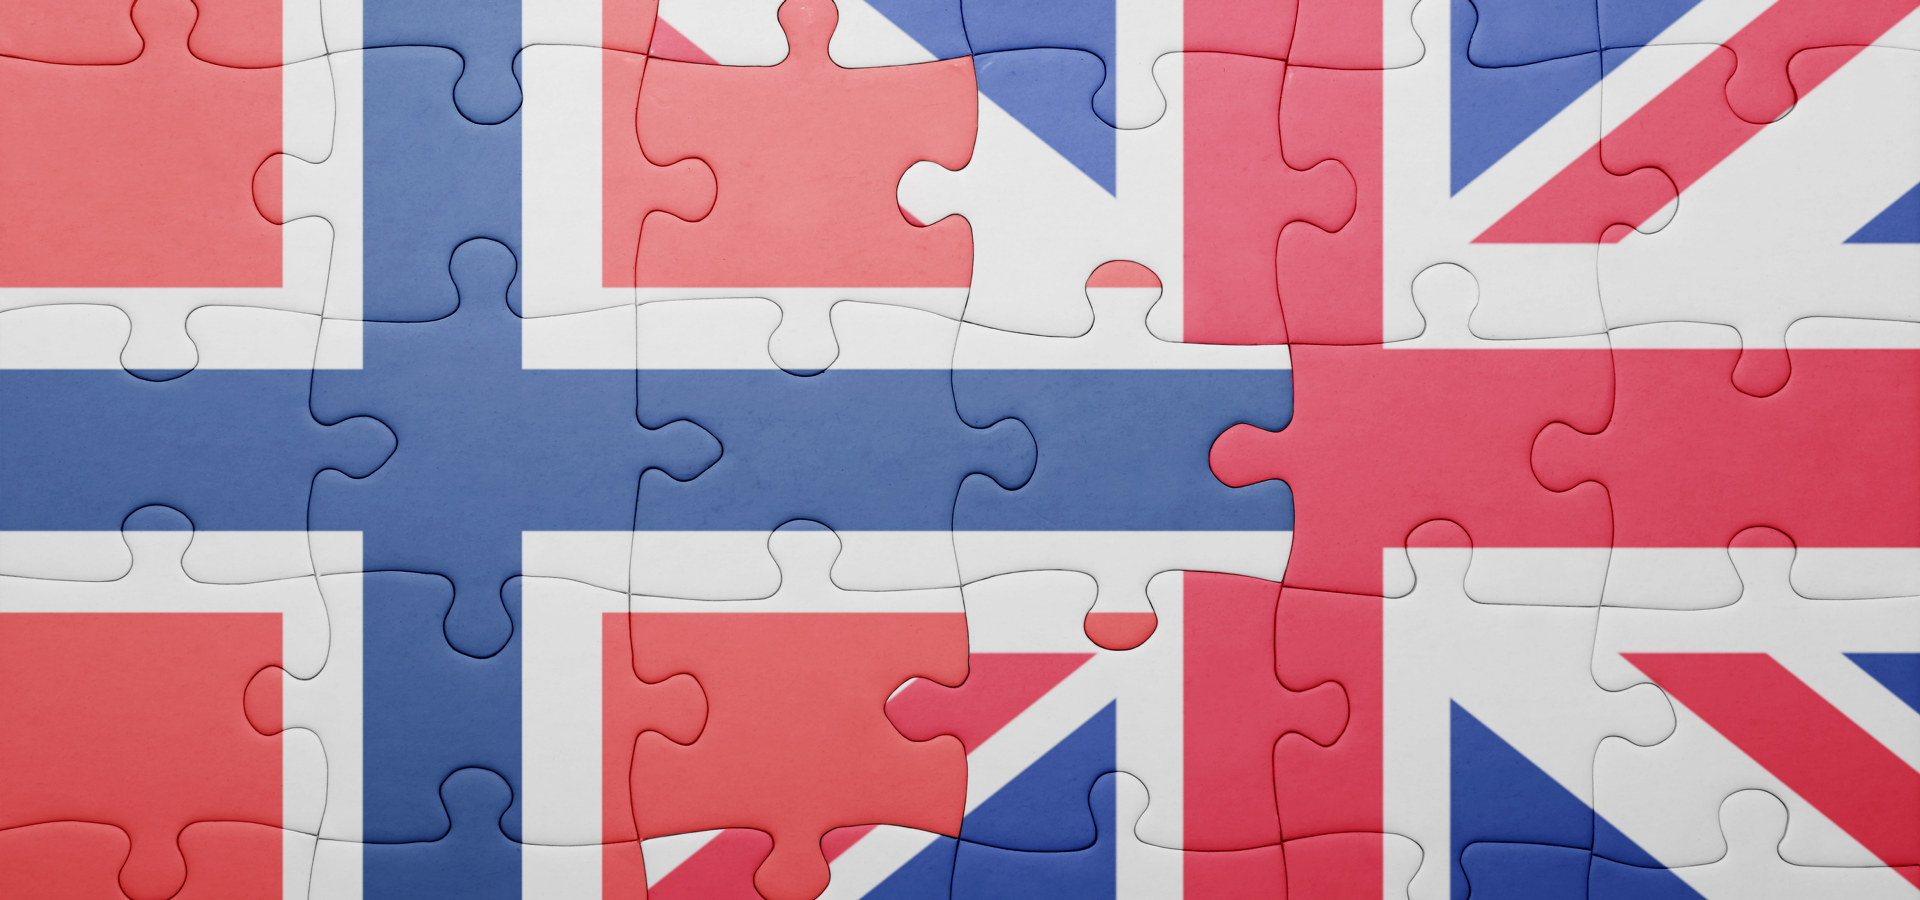 Norge Storbritannia flagg puslespill